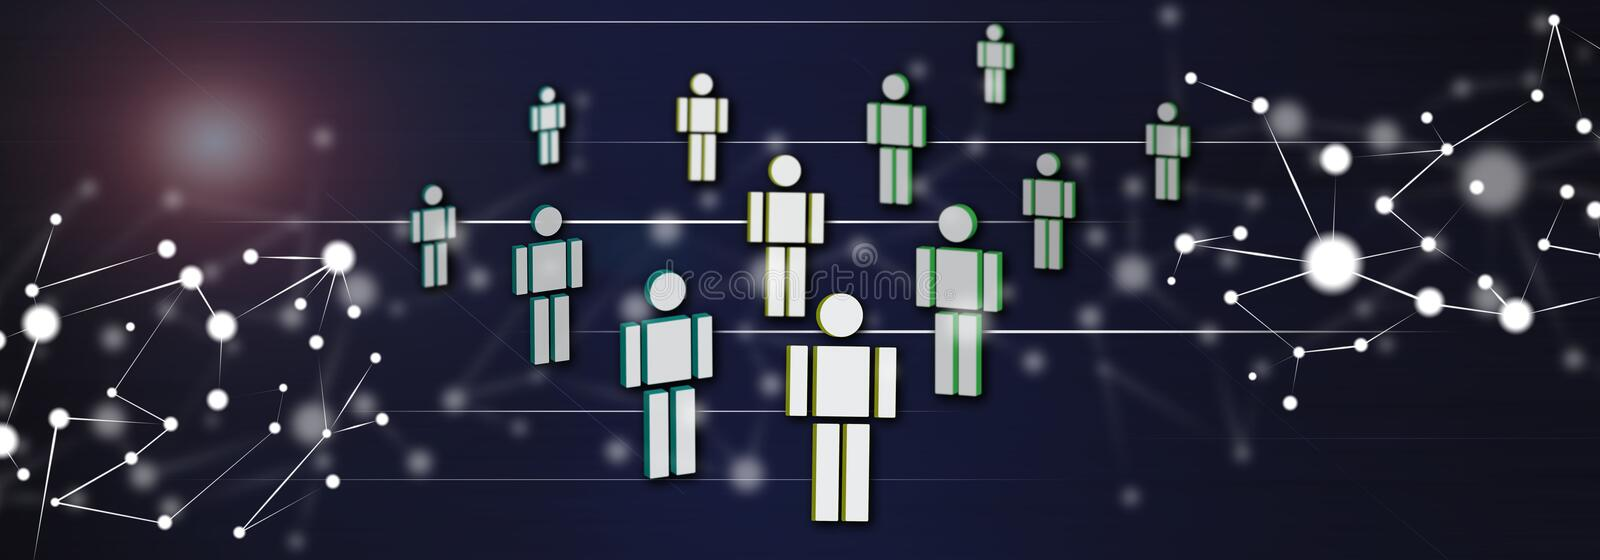 Concept of social network. Illustration of a social network concept stock illustration